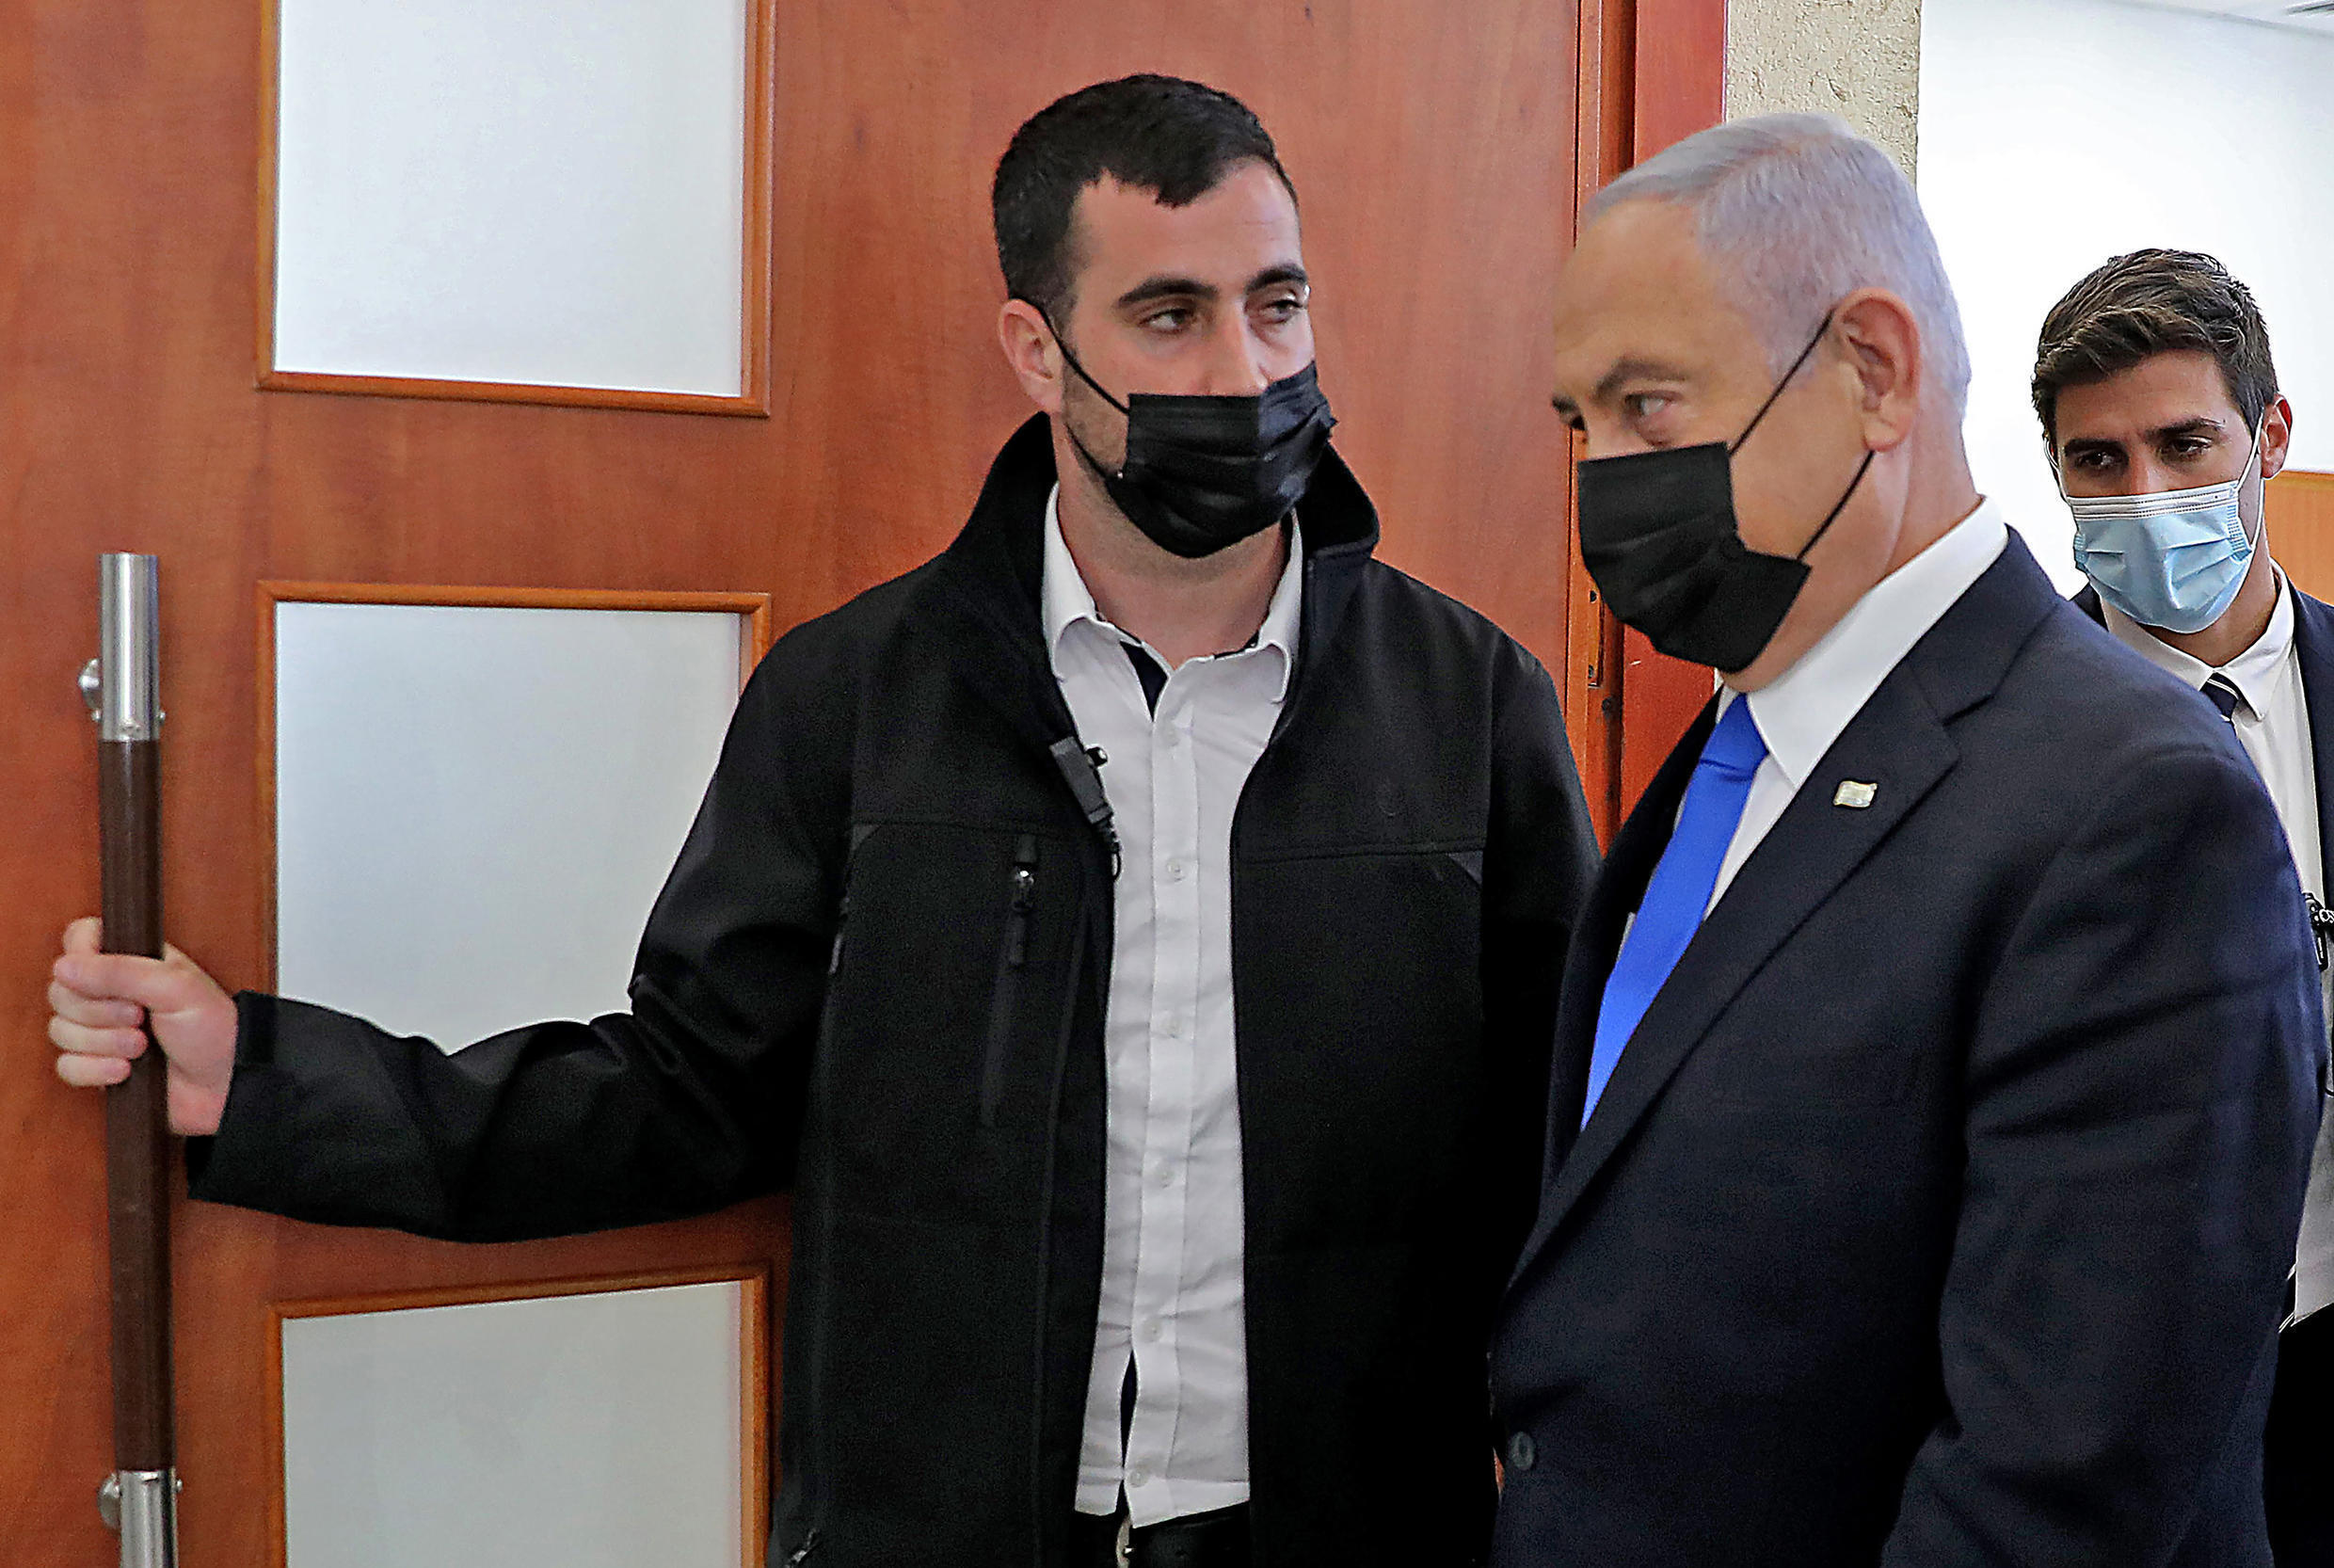 Israeli Prime Minister Benjamin Netanyahu, who is seen here leaving court last month after a hearing in his corruption tiral, faces a midnight deadline to form a government after an inconclusive March election